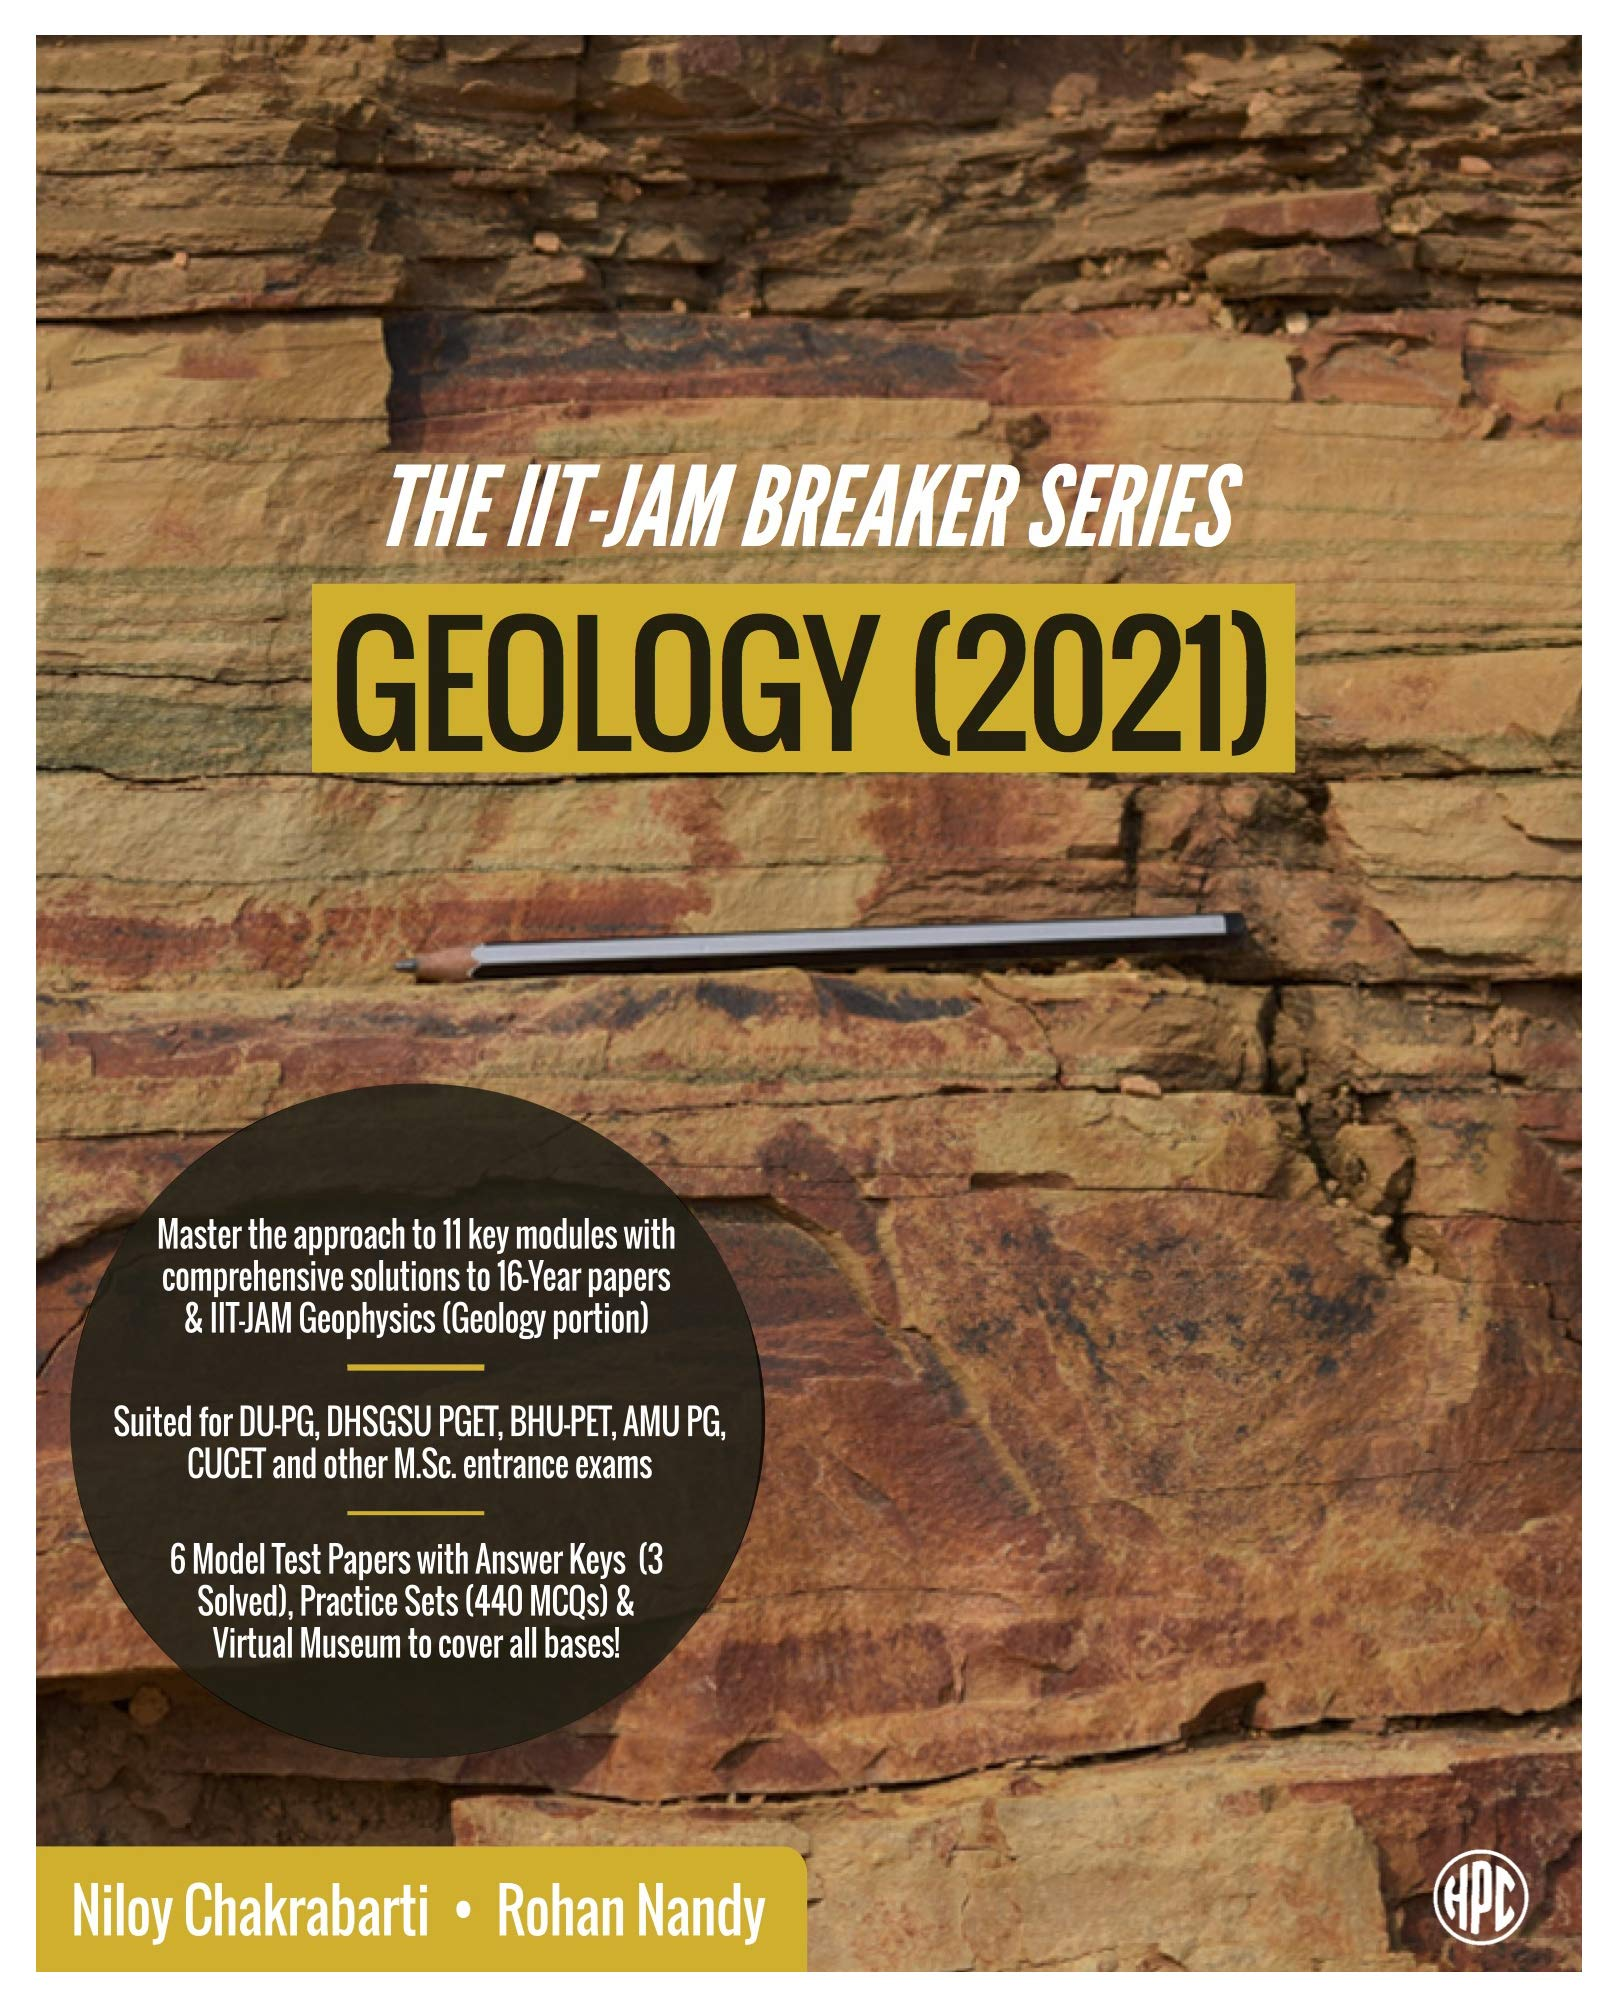 The IIT-JAM Breaker Series: Geology (2021) – Subjectwise (11 Modules) Comprehensively Solved 2005-2020 Papers + JAM Geophysics (Geology Part), 440 MCQ Practice Set, 6 Model Papers, DU-PG, BHU-PET, AMU